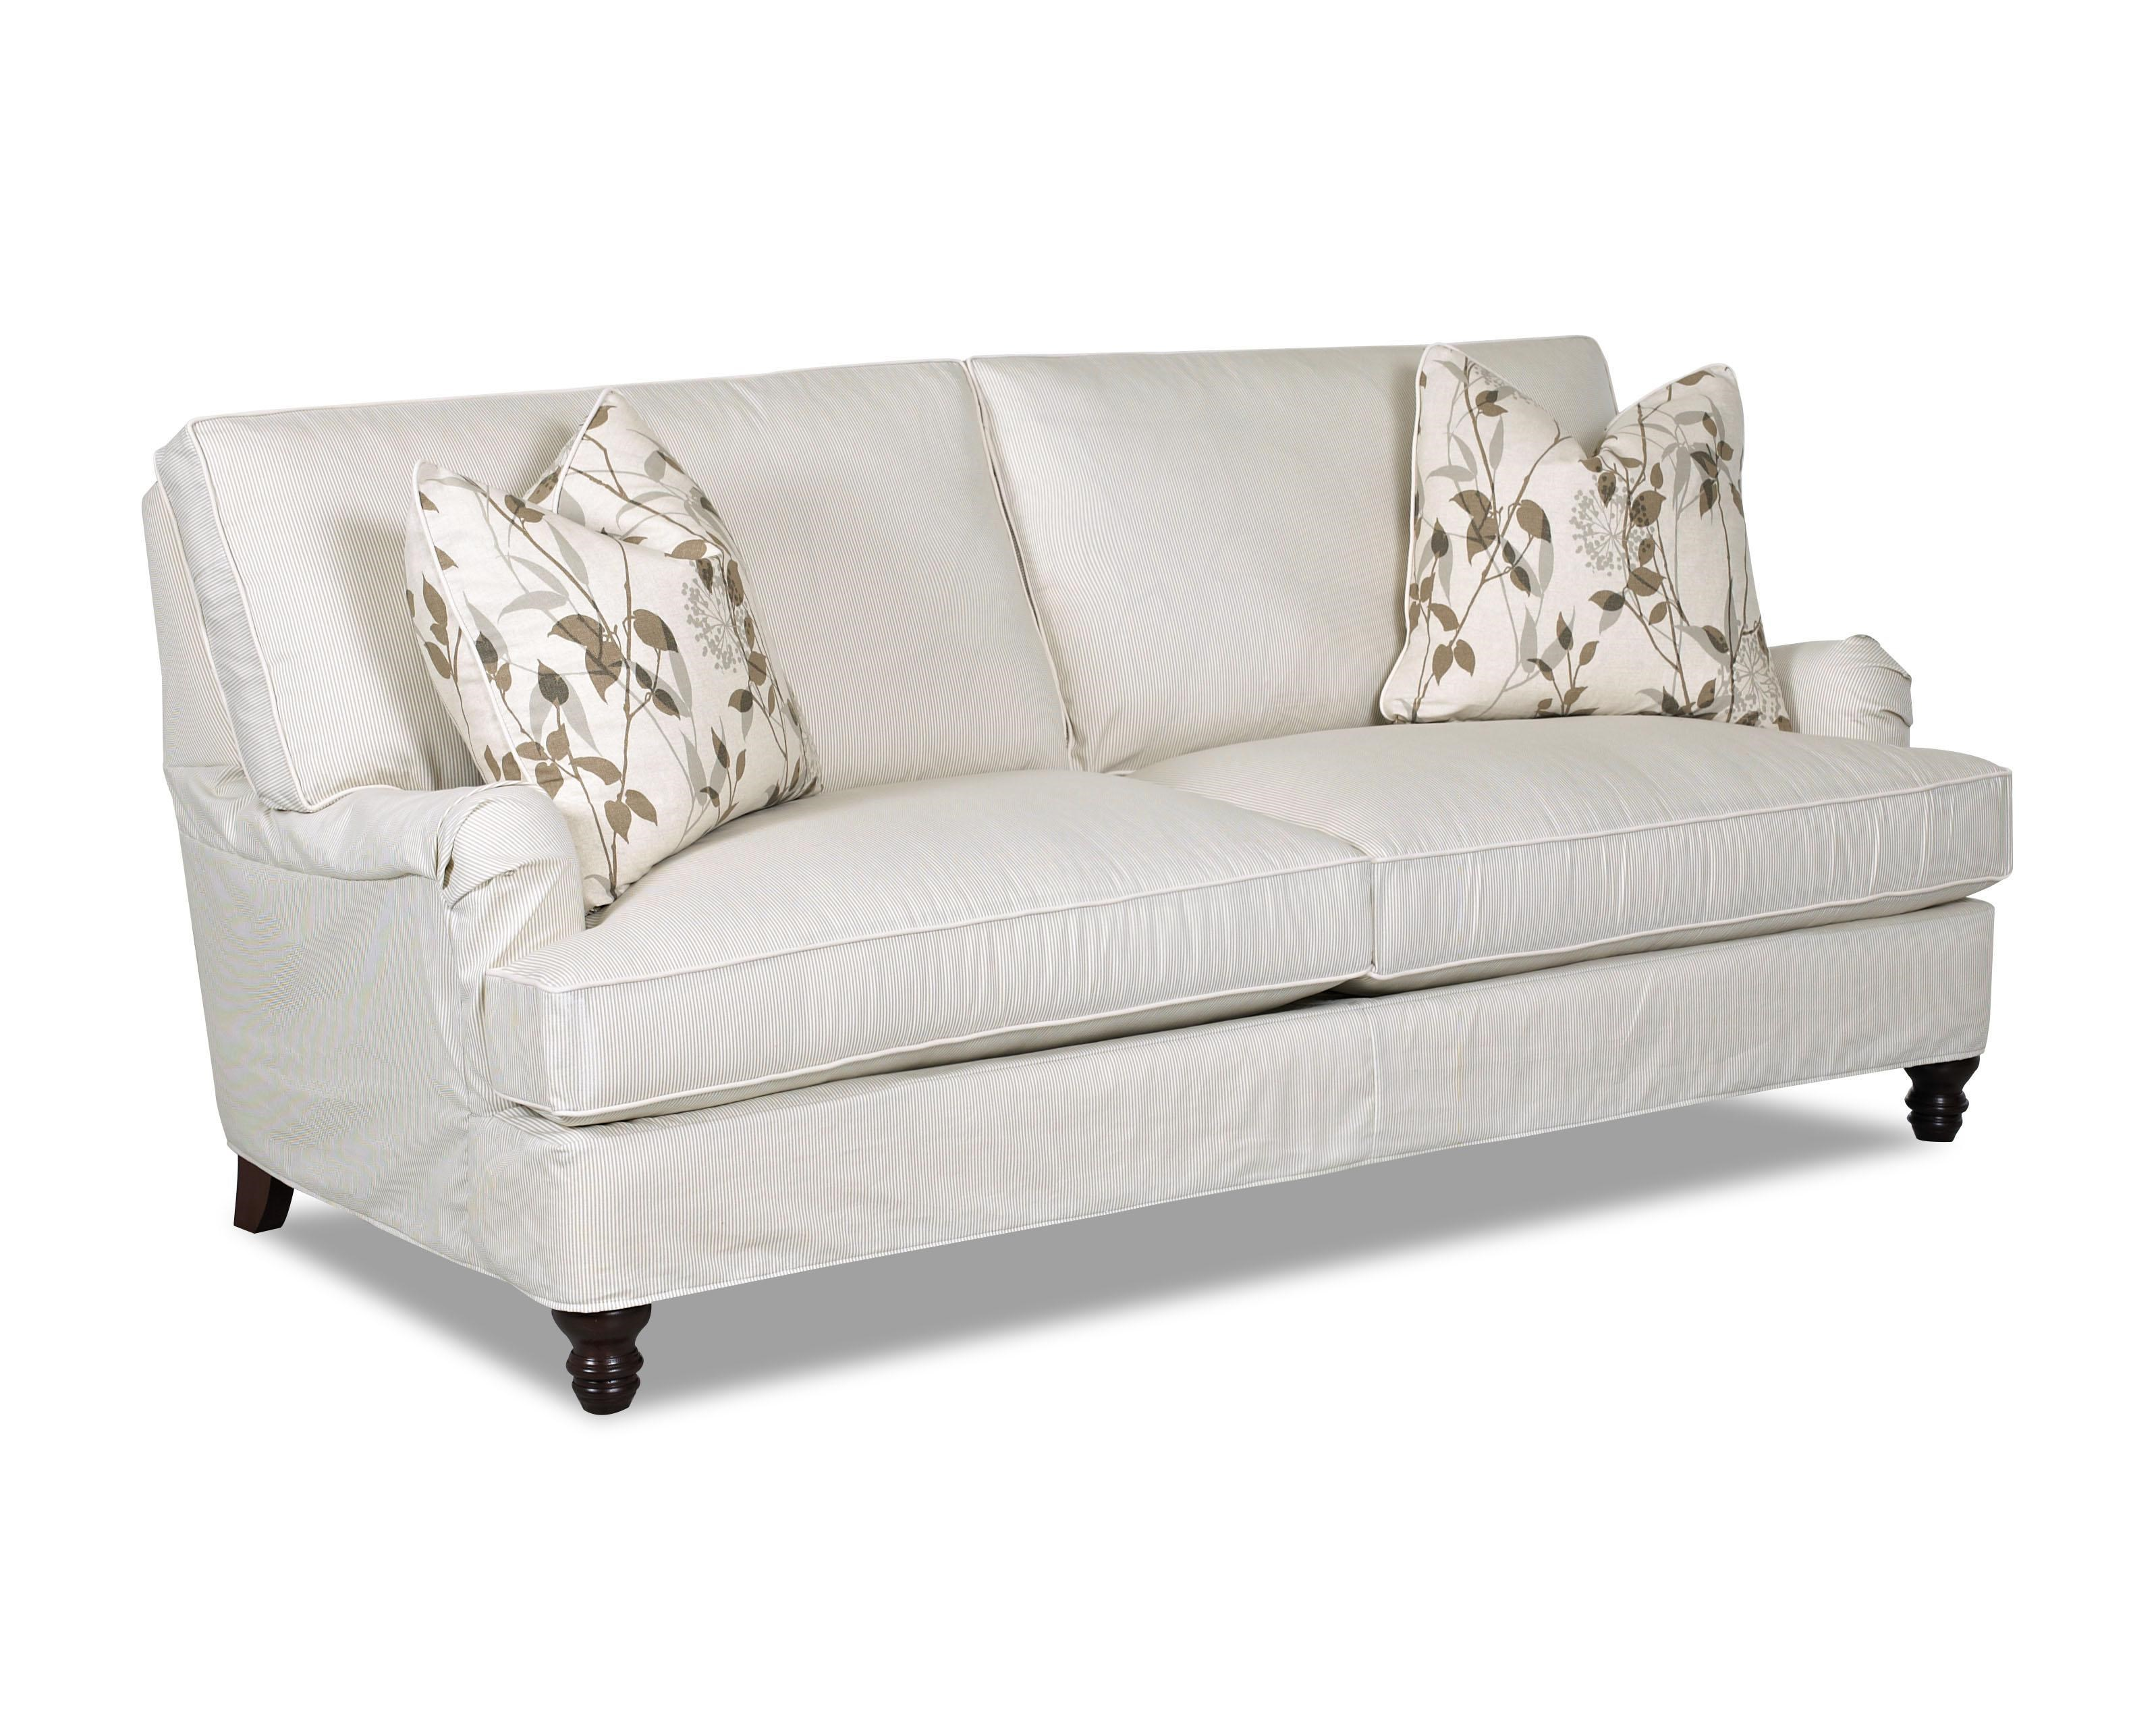 klaussner loewy traditional stationary sofa with slip cover and rh valuecitynj com charles of london sofa images